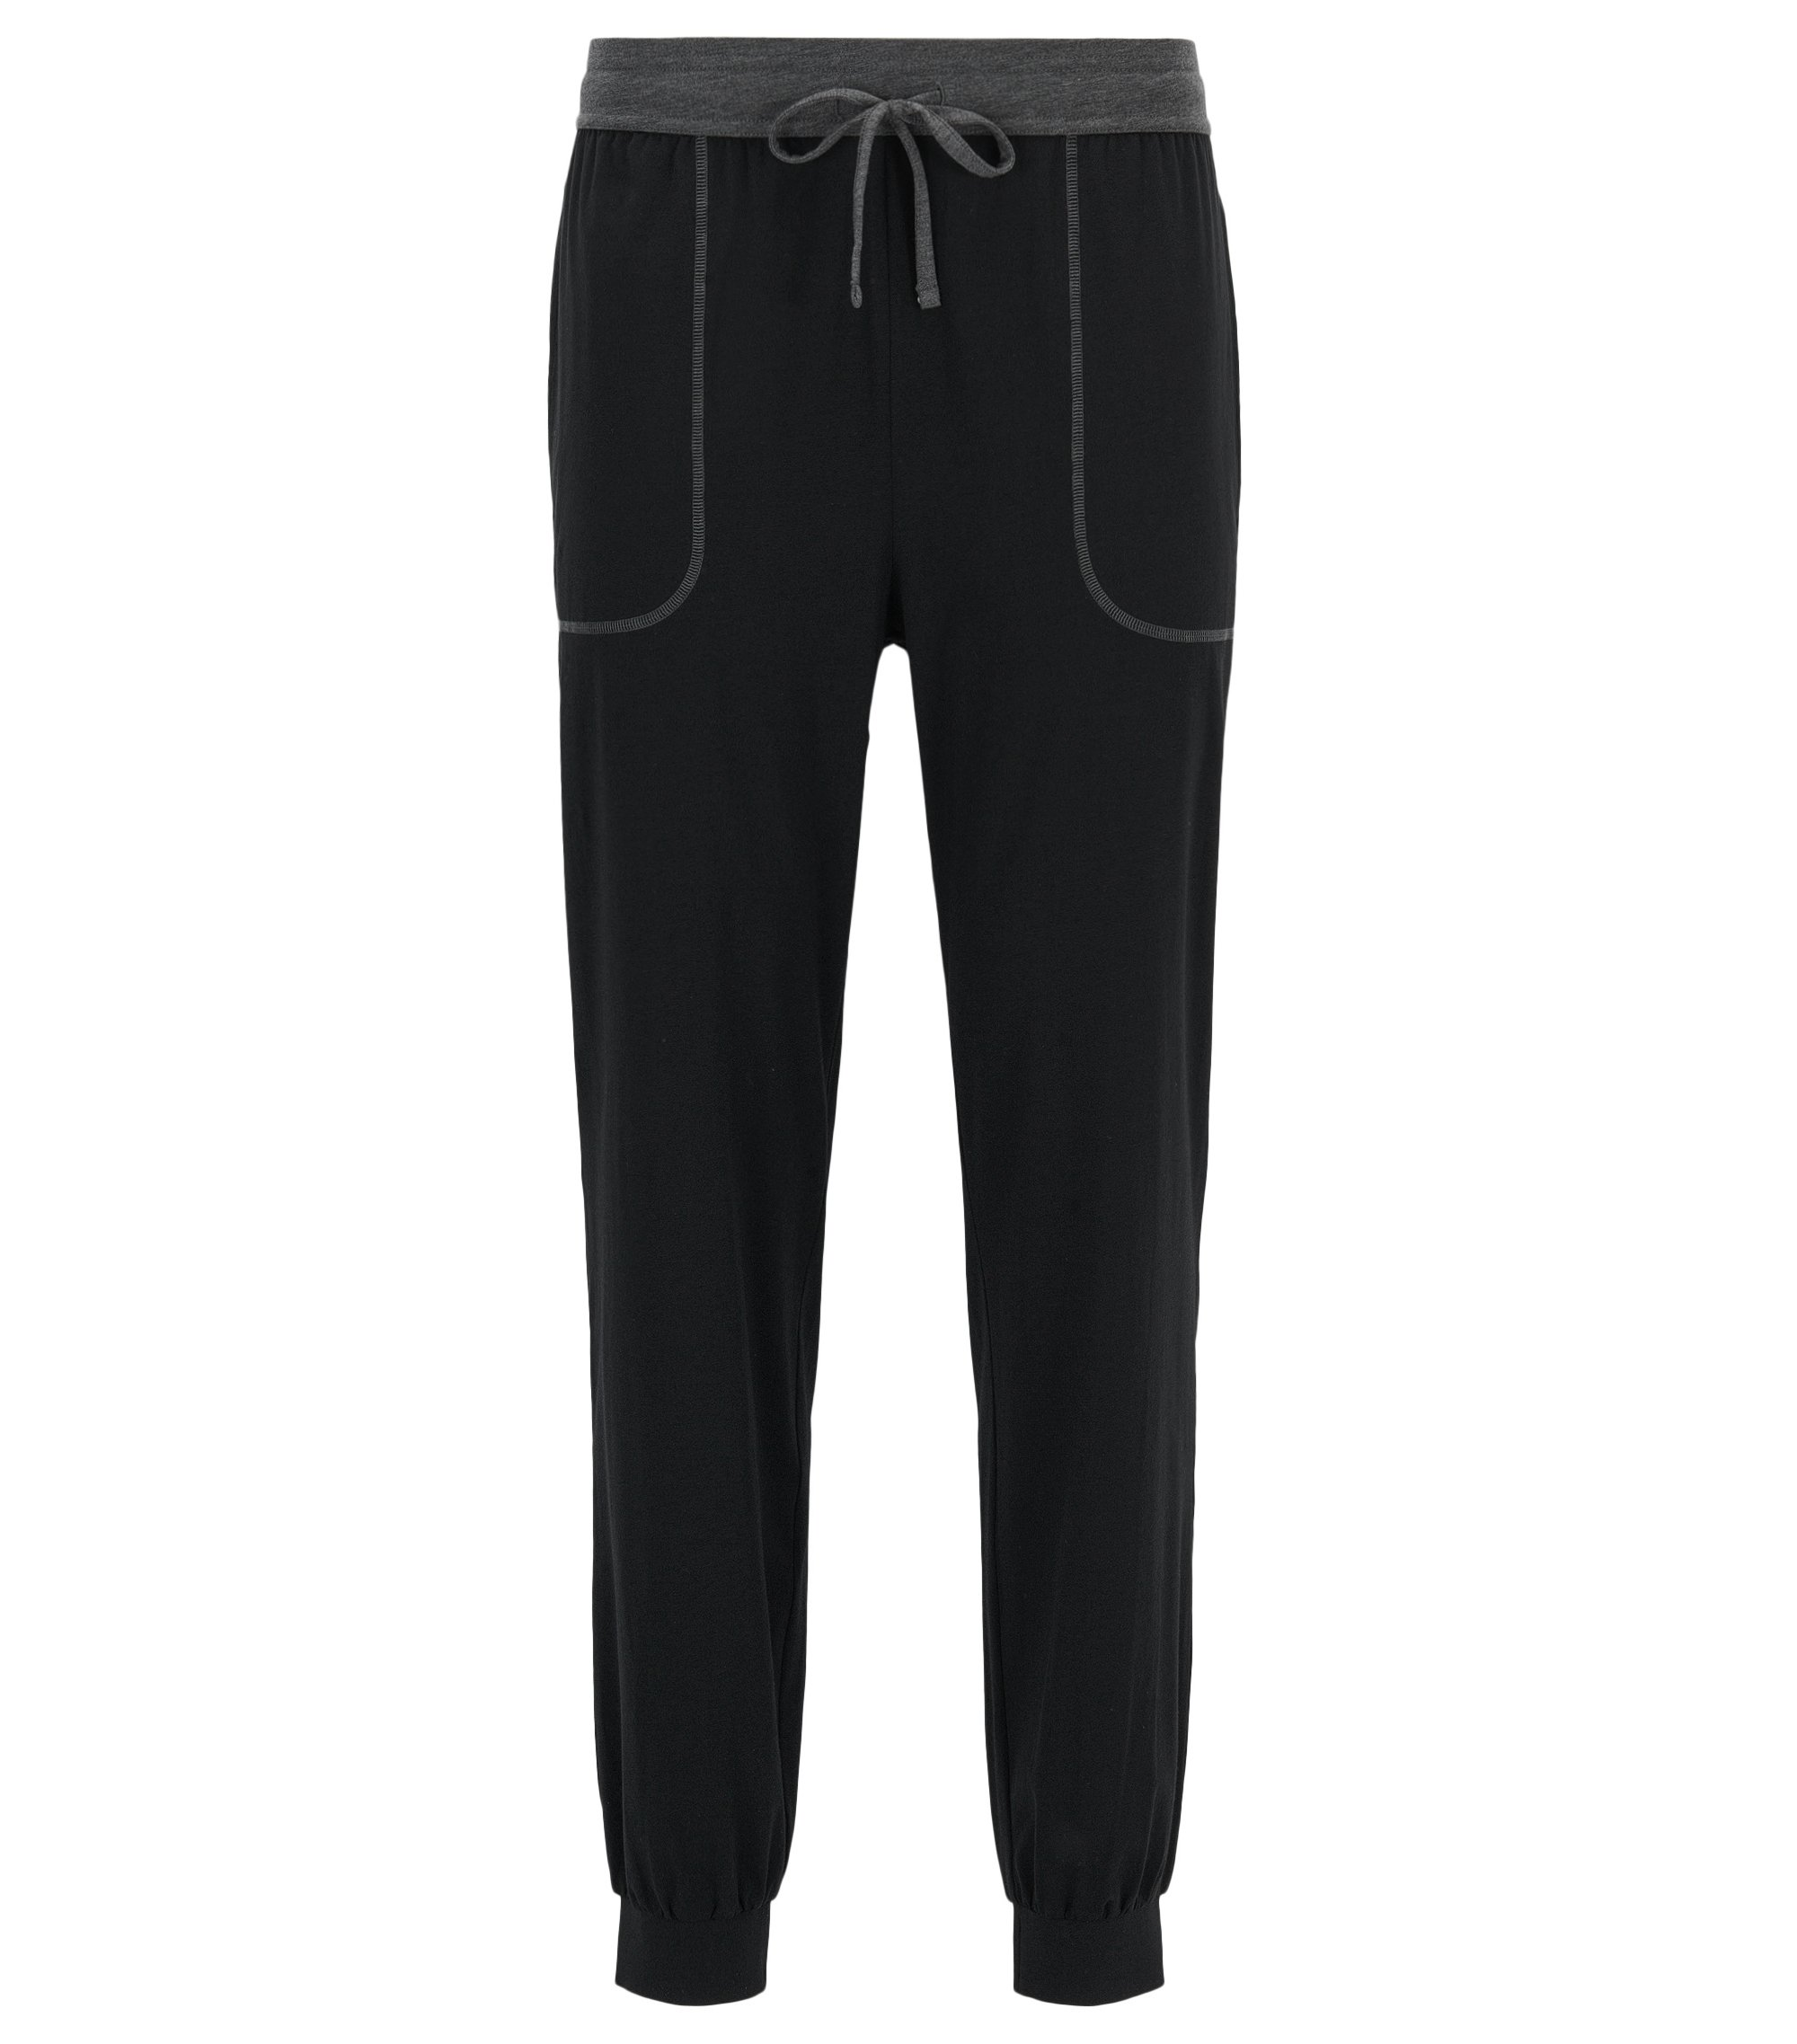 Cuffed hem pyjama bottoms in stretch cotton-blend jersey, Black